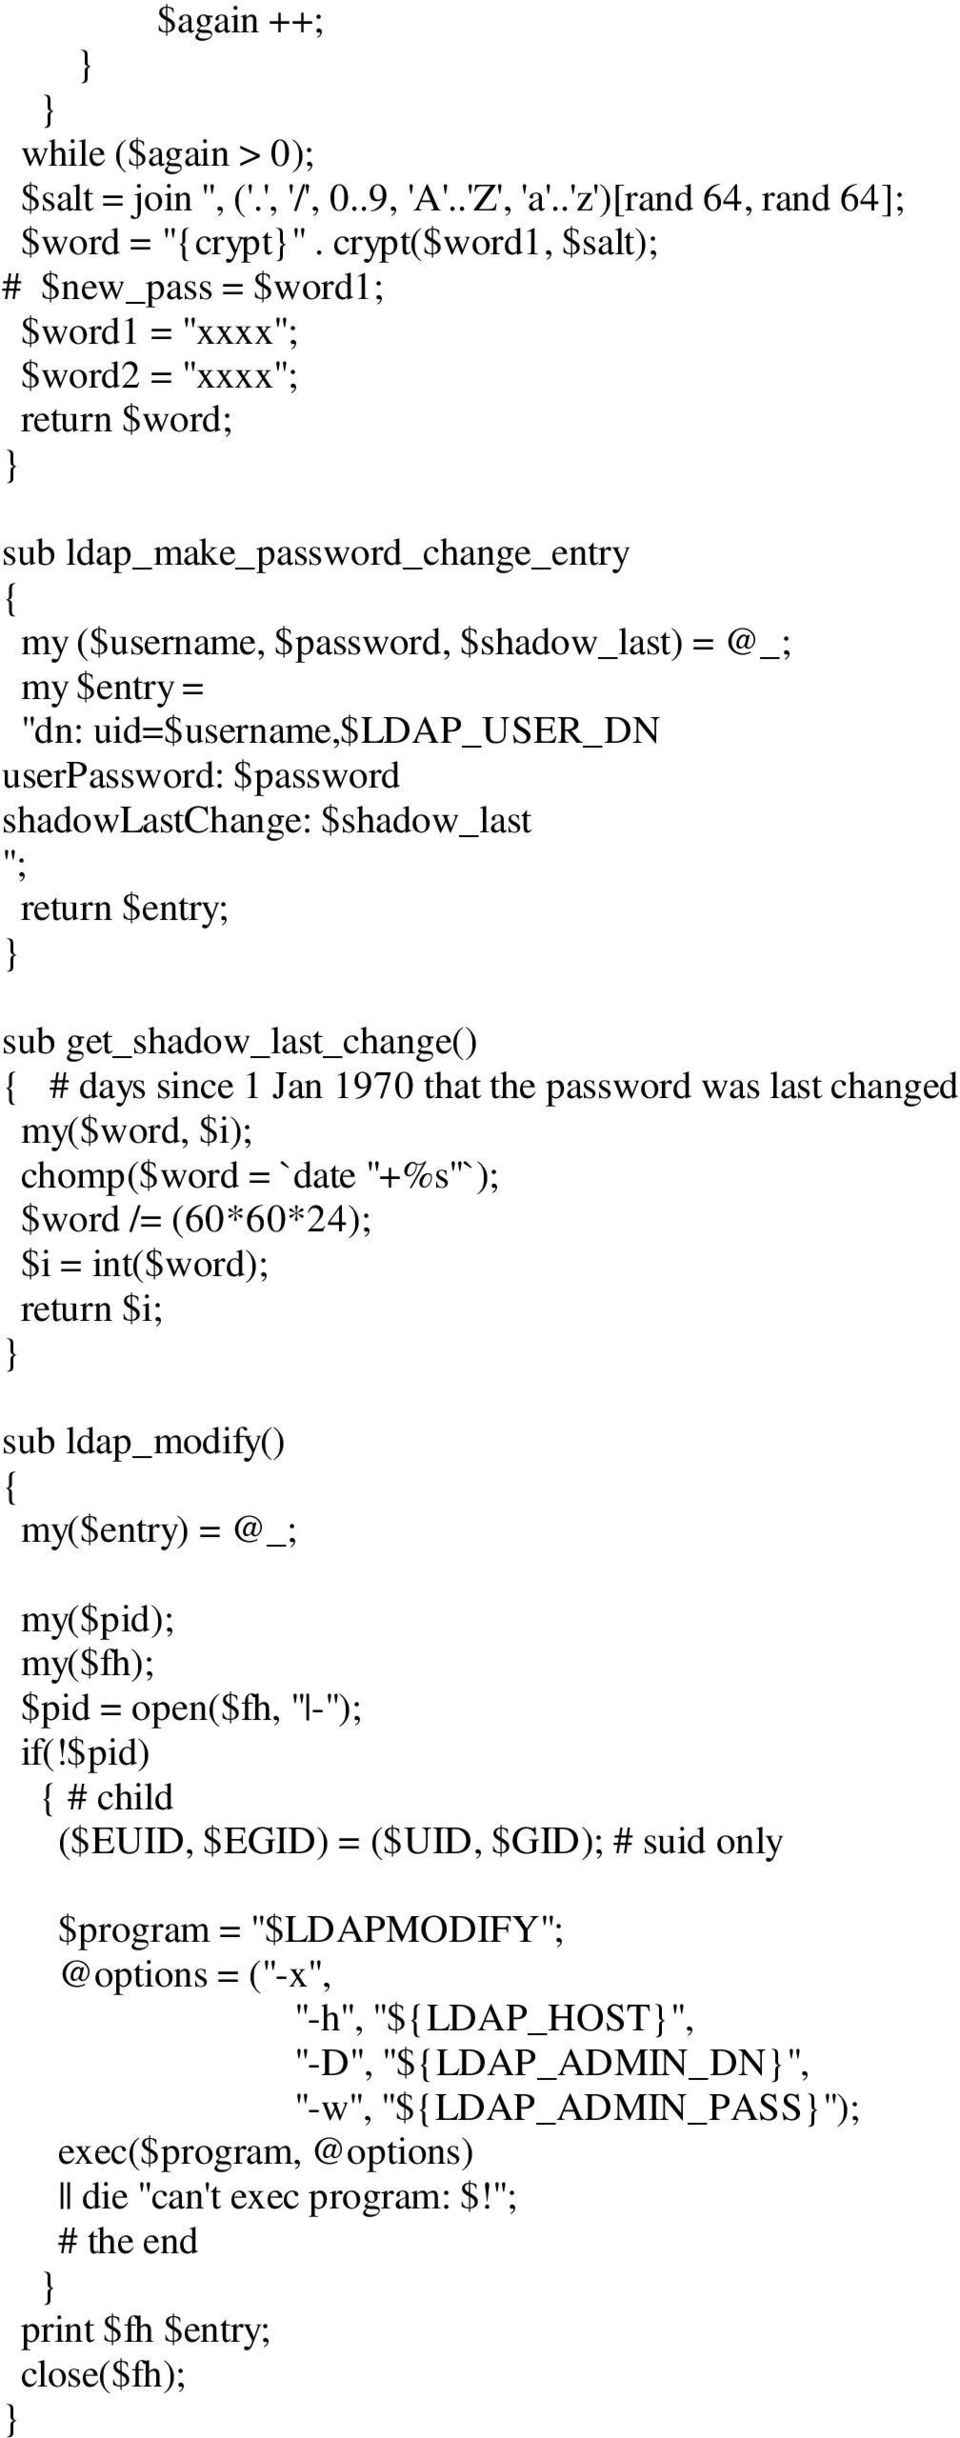 "uid=$username,$ldap_user_dn userpassword: $password shadowlastchange: $shadow_last ""; return $entry; sub get_shadow_last_change() # days since 1 Jan 1970 that the password was last changed my($word,"